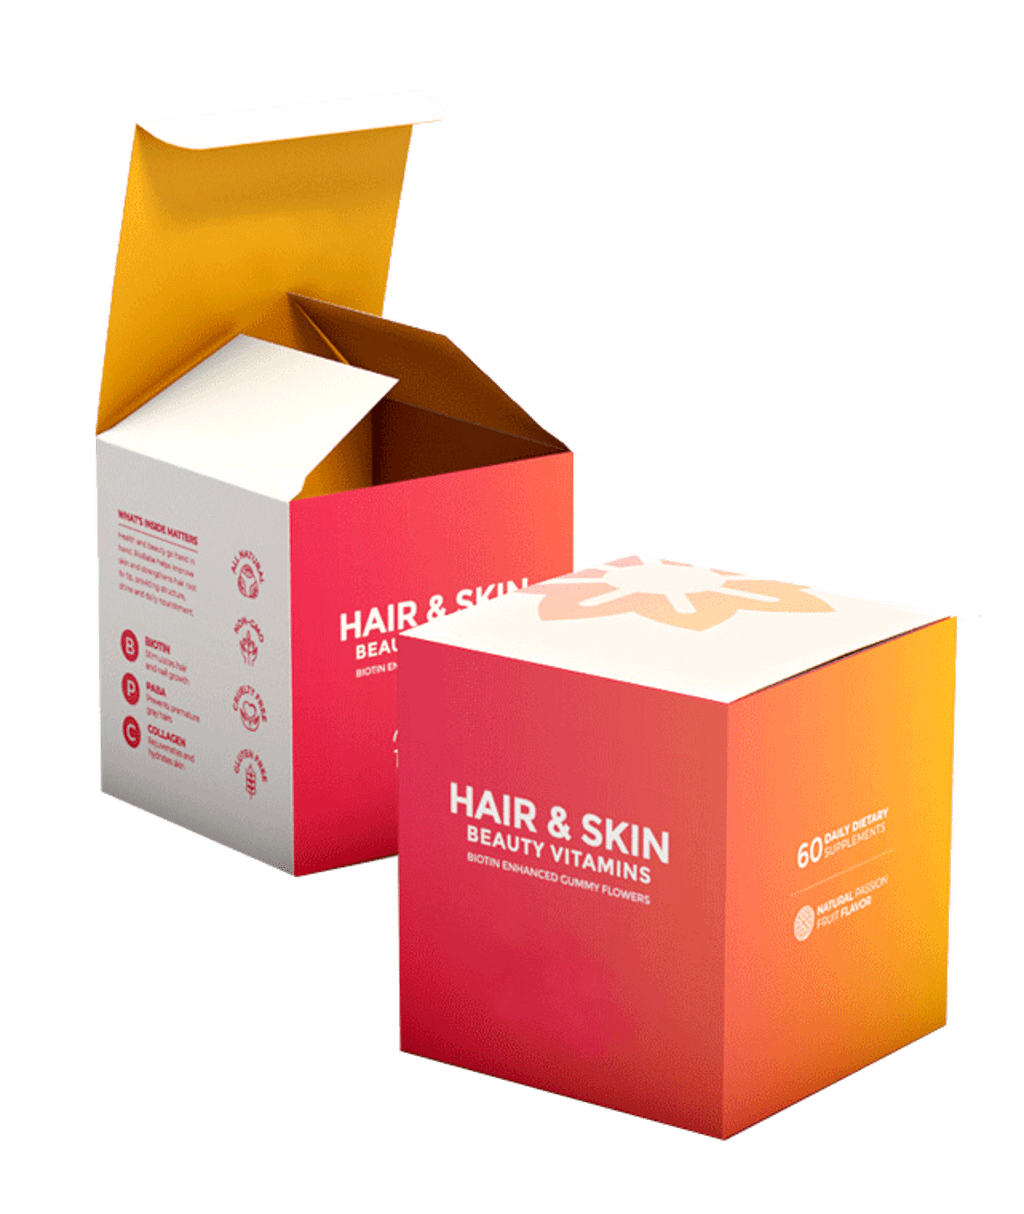 Read These 10 Tips about Custom Packaging to Double Your Business